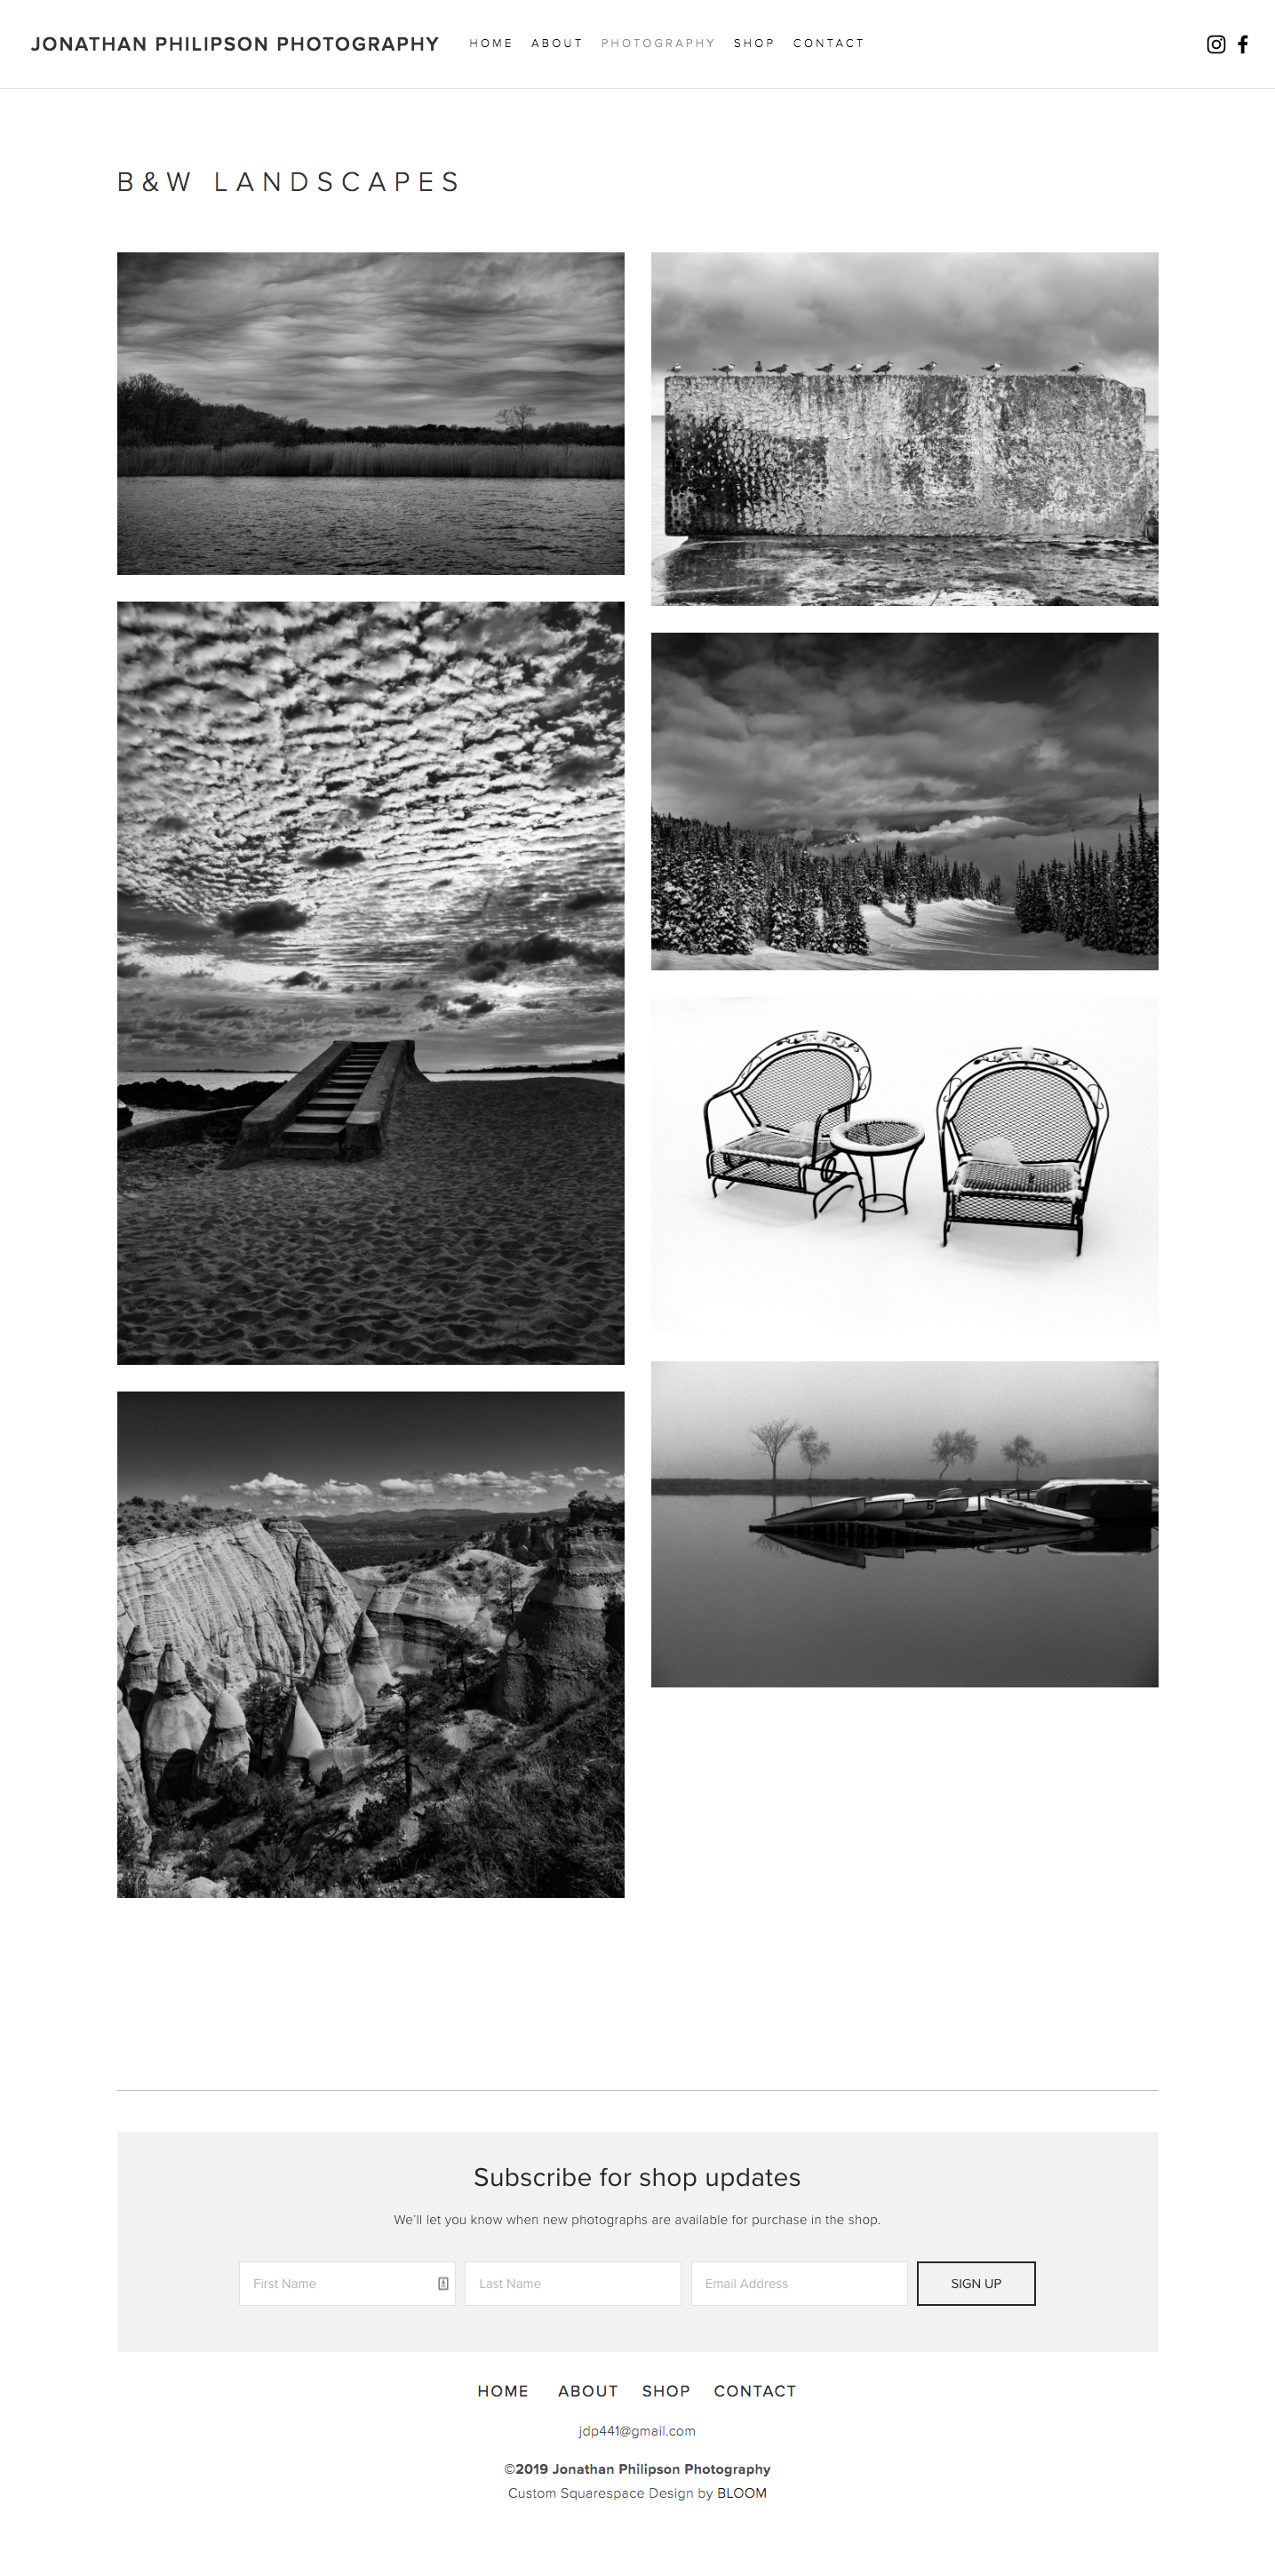 screencapture-jonathanphilipson-bw-landscapes-2-2019-06-04-10_47_00.png